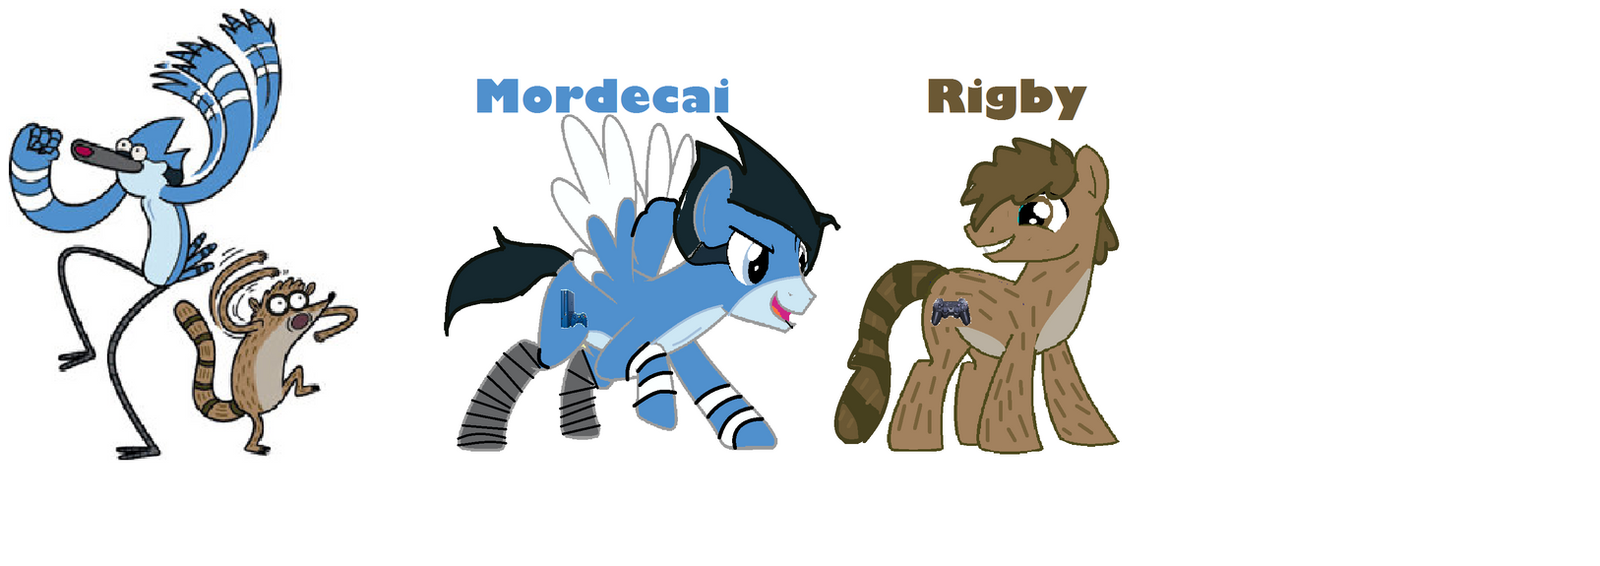 regular show as mlp characters by killerbeats36912 on